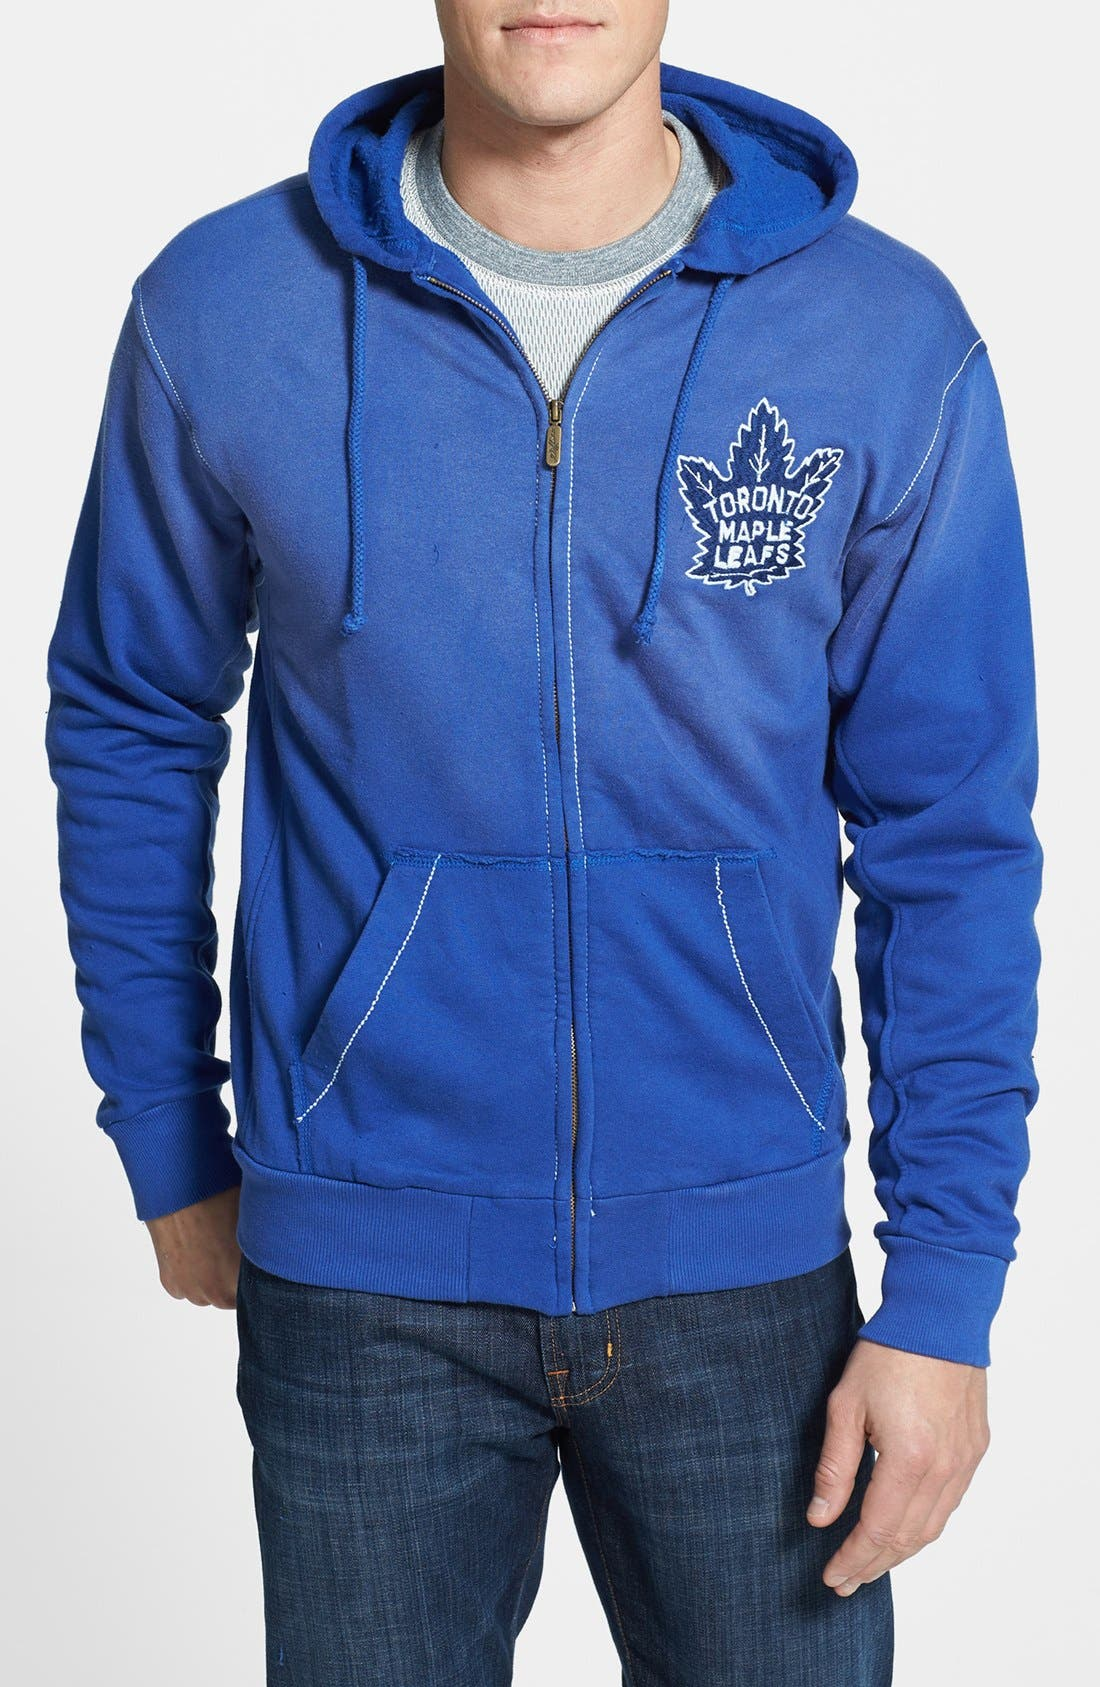 Alternate Image 1 Selected - Red Jacket 'Toronto Maple Leafs - Buzz' Hoodie